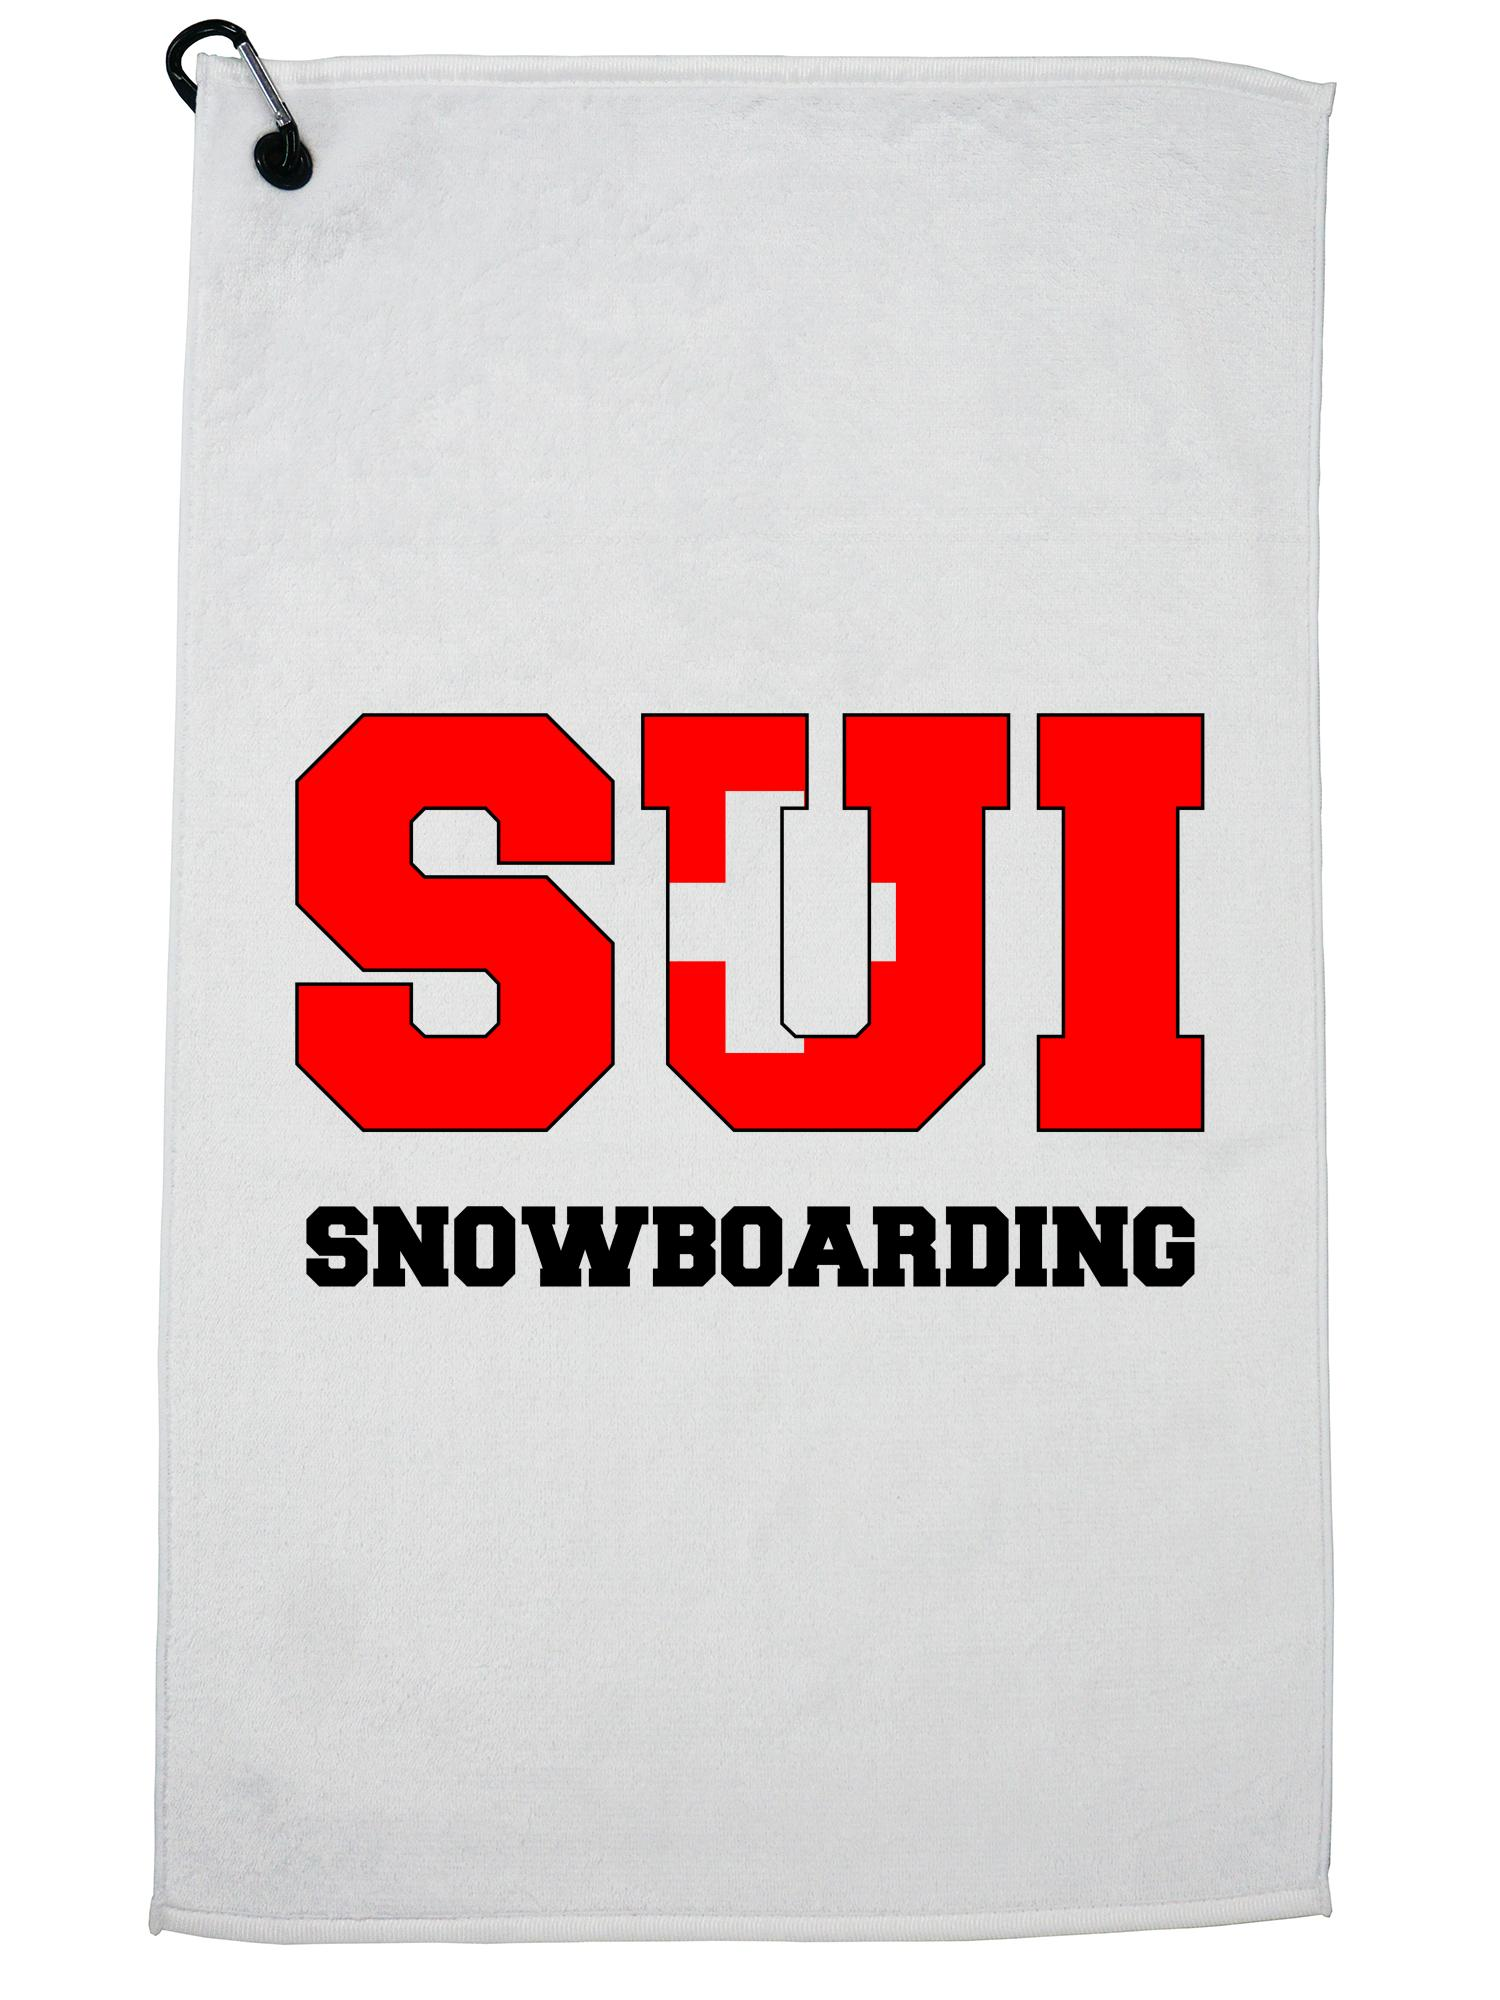 Swiss Snowboarding Winter Olympic SUI Flag Golf Towel with Carabiner Clip by Hollywood Thread